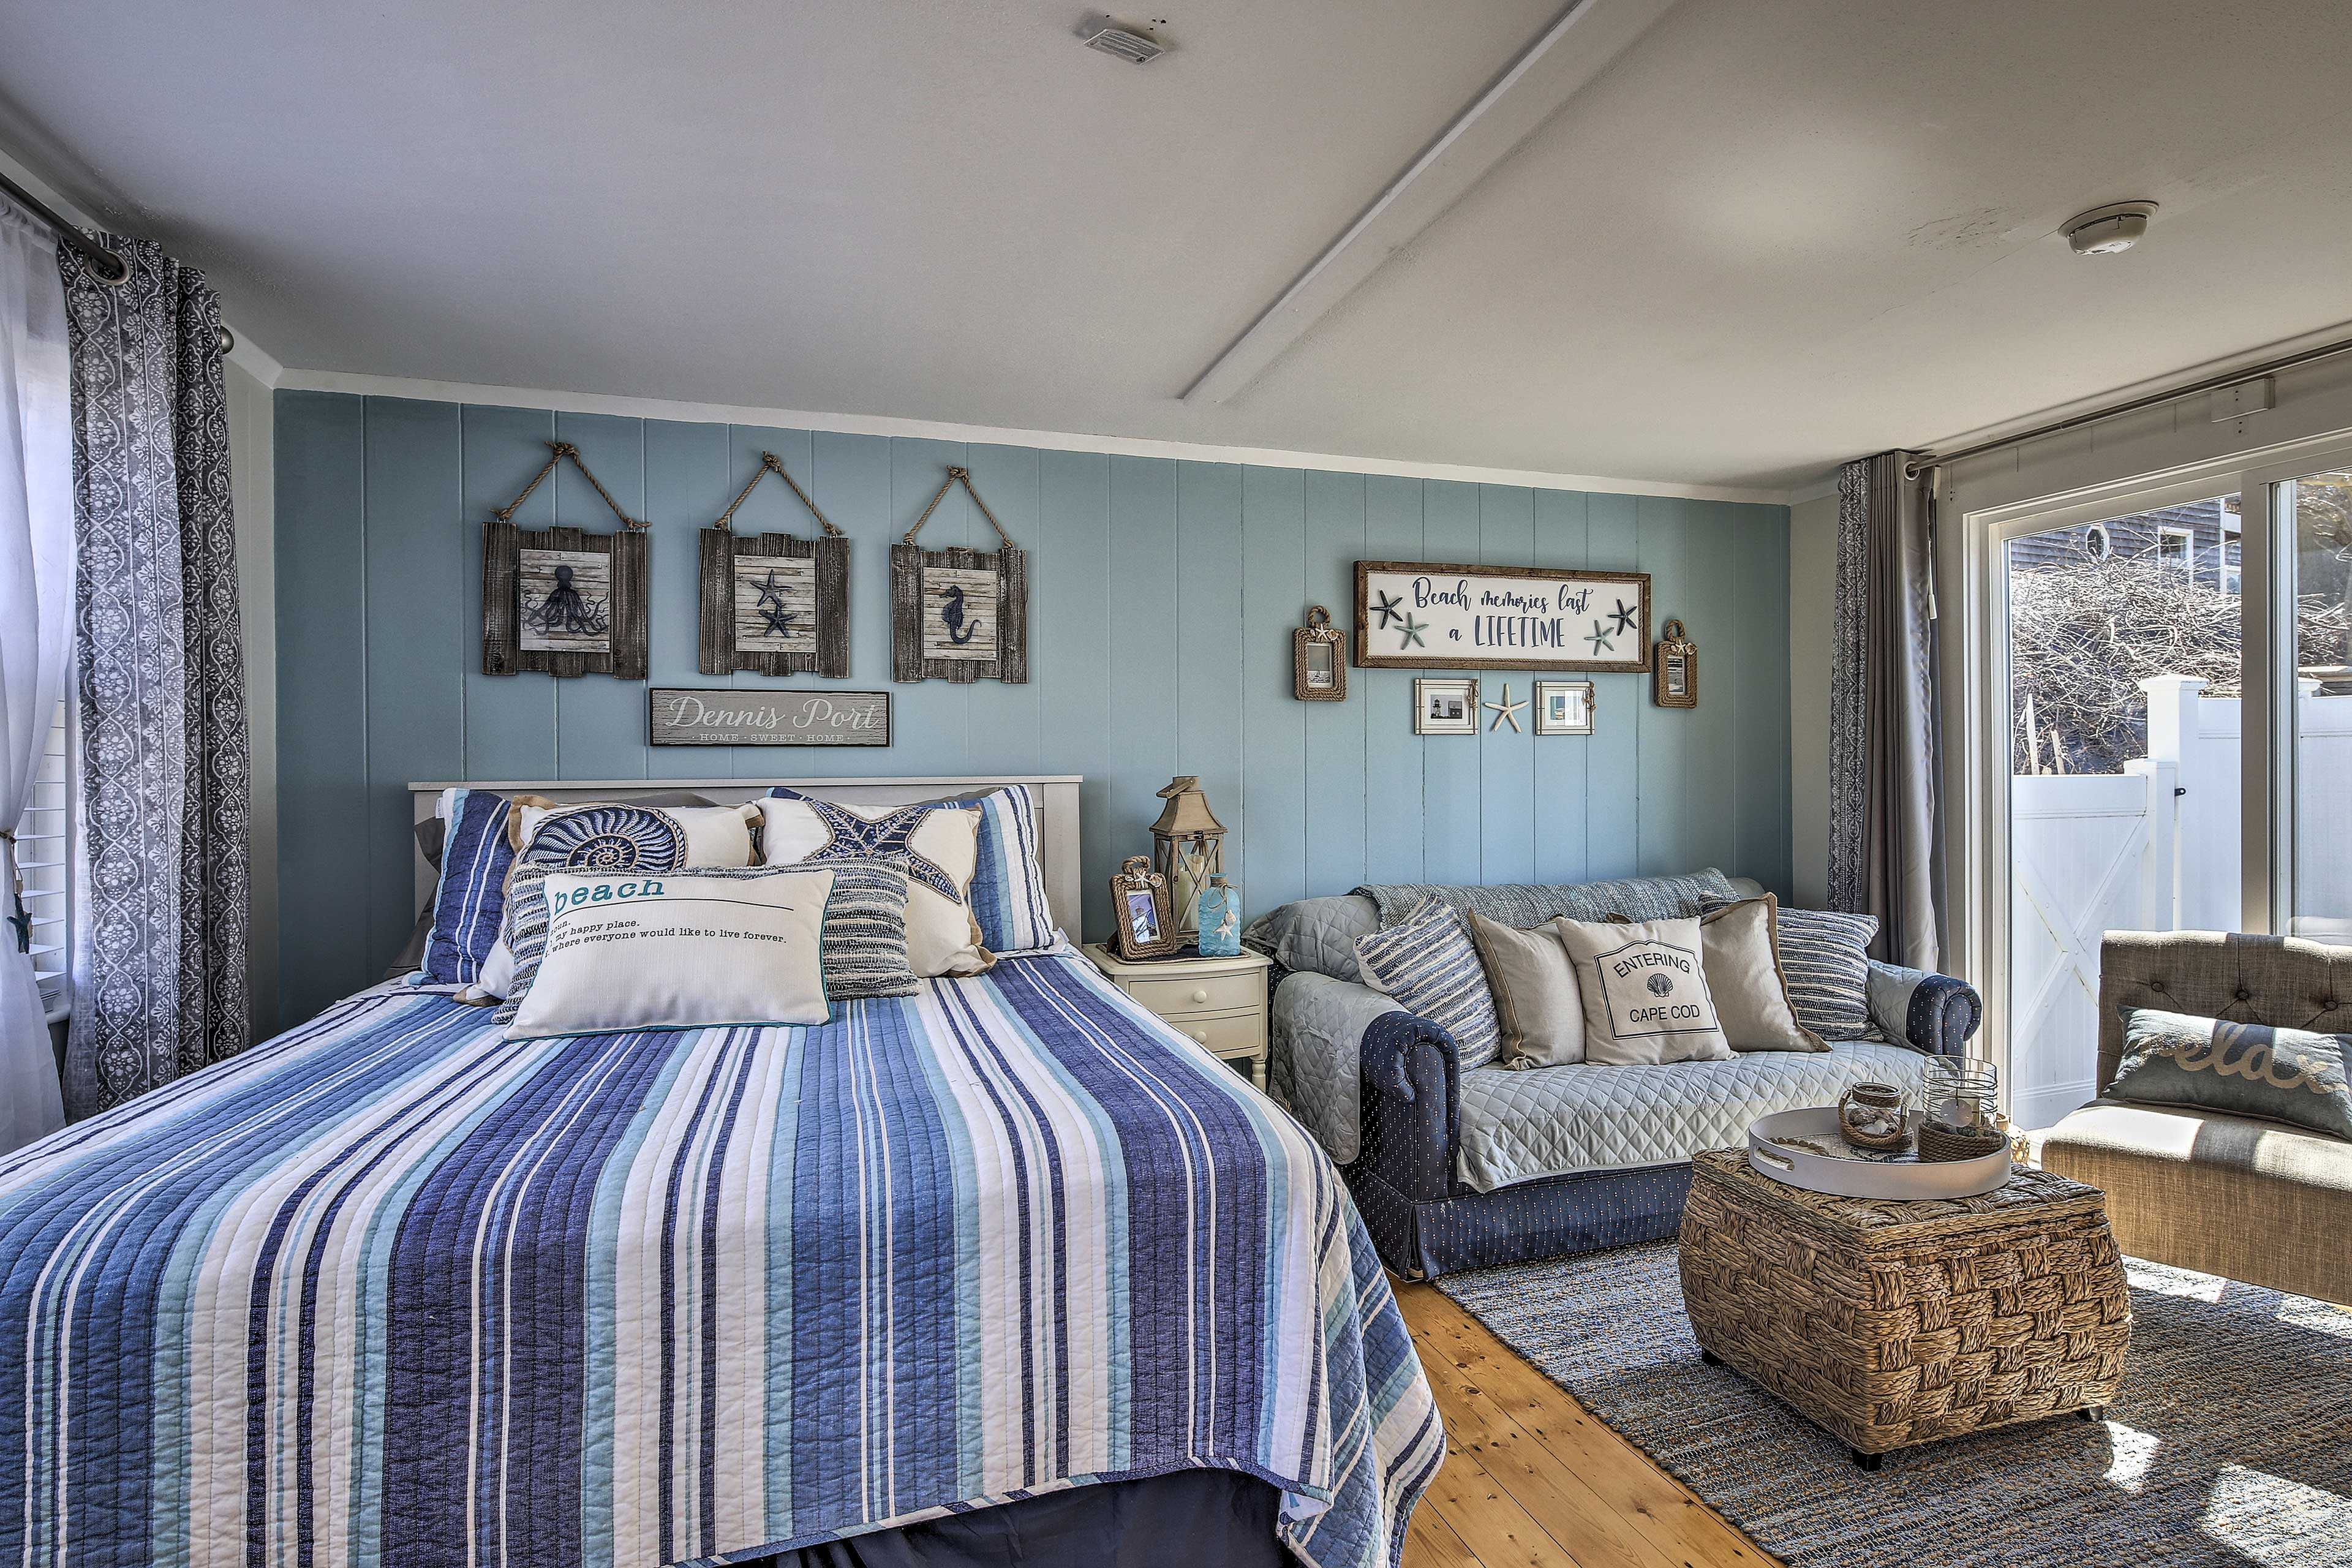 Escape to Dennis Port and stay at this beach-themed 1-bath vacation rental!